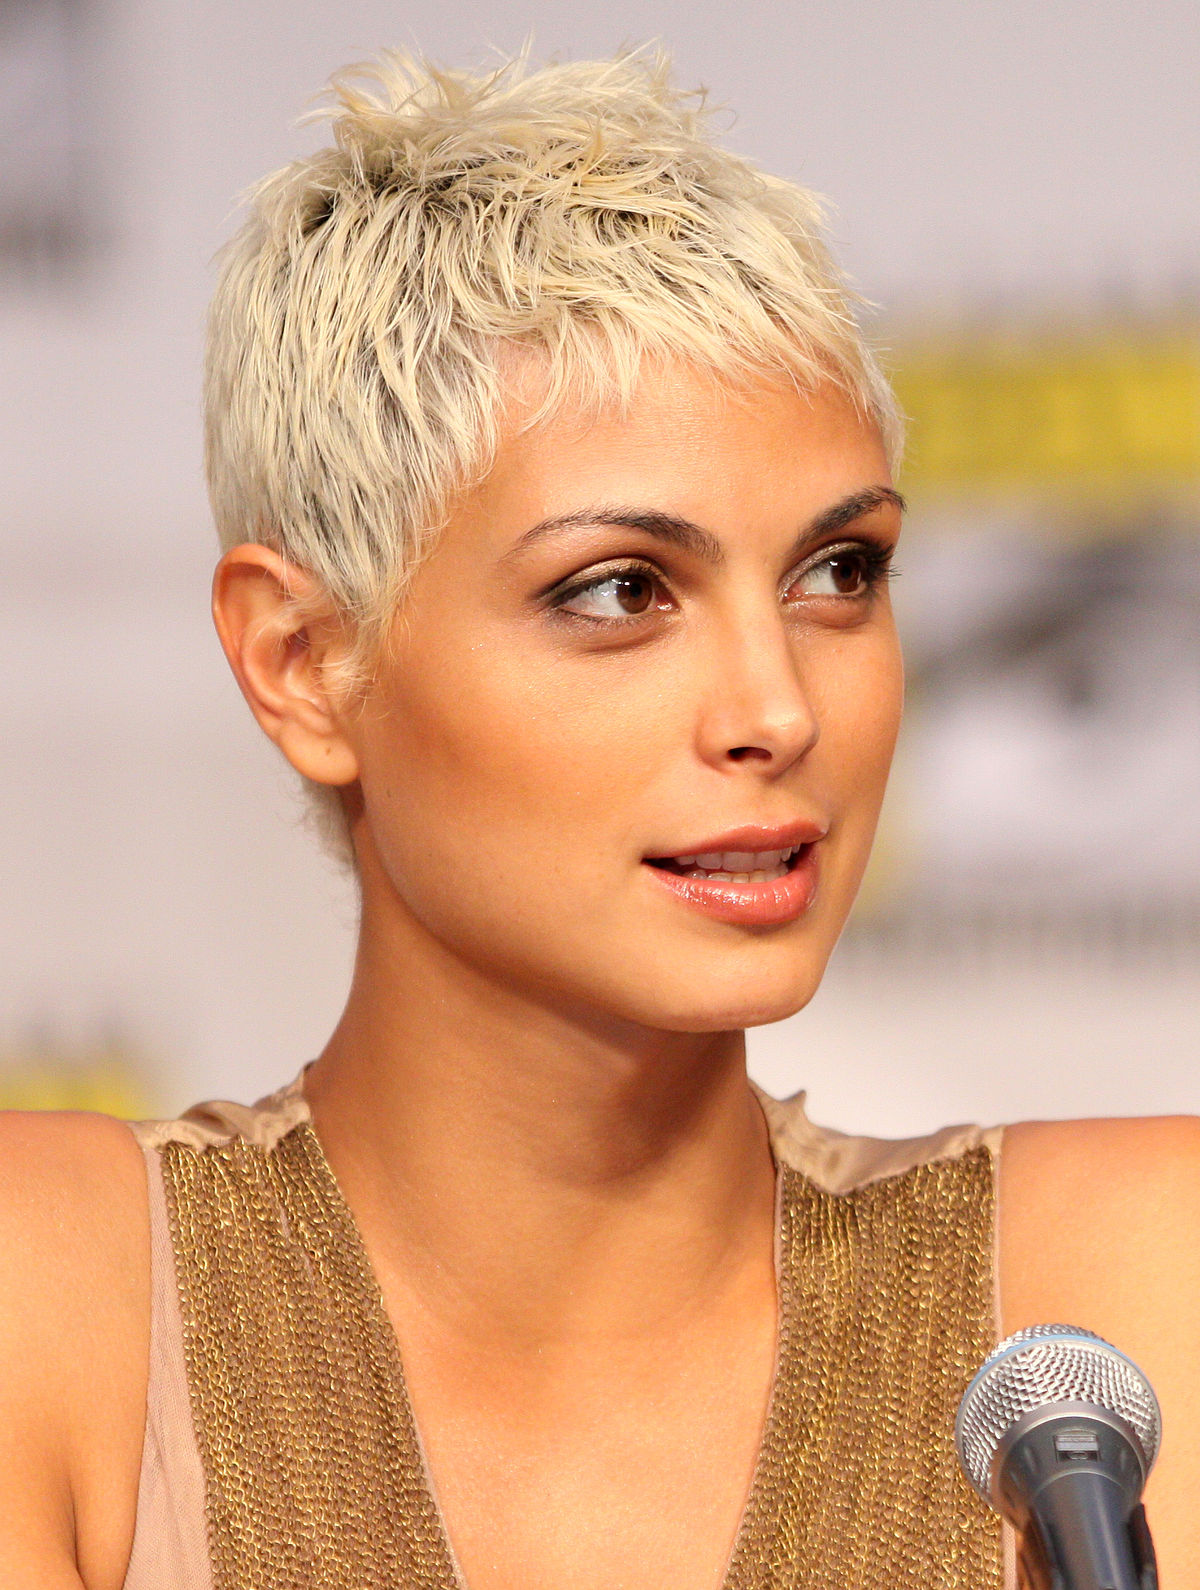 Pixie cut - Wikipedia